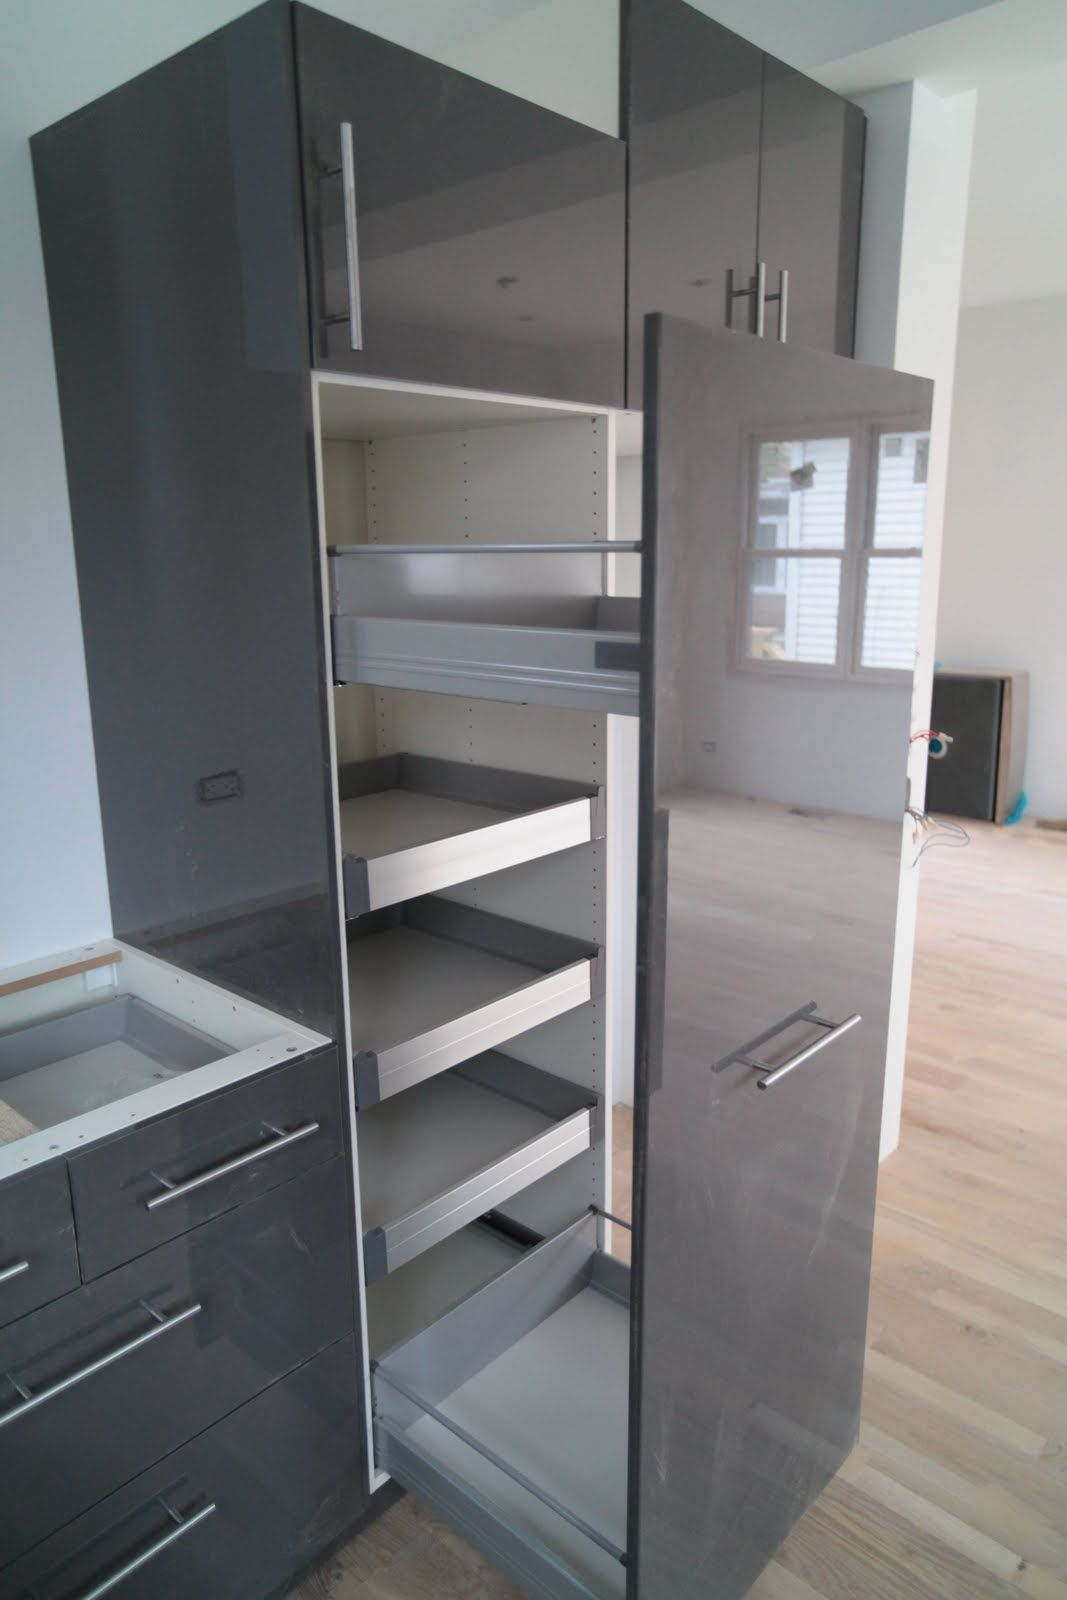 Canvas Of Decorate Ikea Pull Out Pantry In Your Kitchen And Say Goodbye To Your Stuffy Kitchen Ikea Kitchen Pantry Pull Out Kitchen Cabinet Pantry Cabinet Ikea